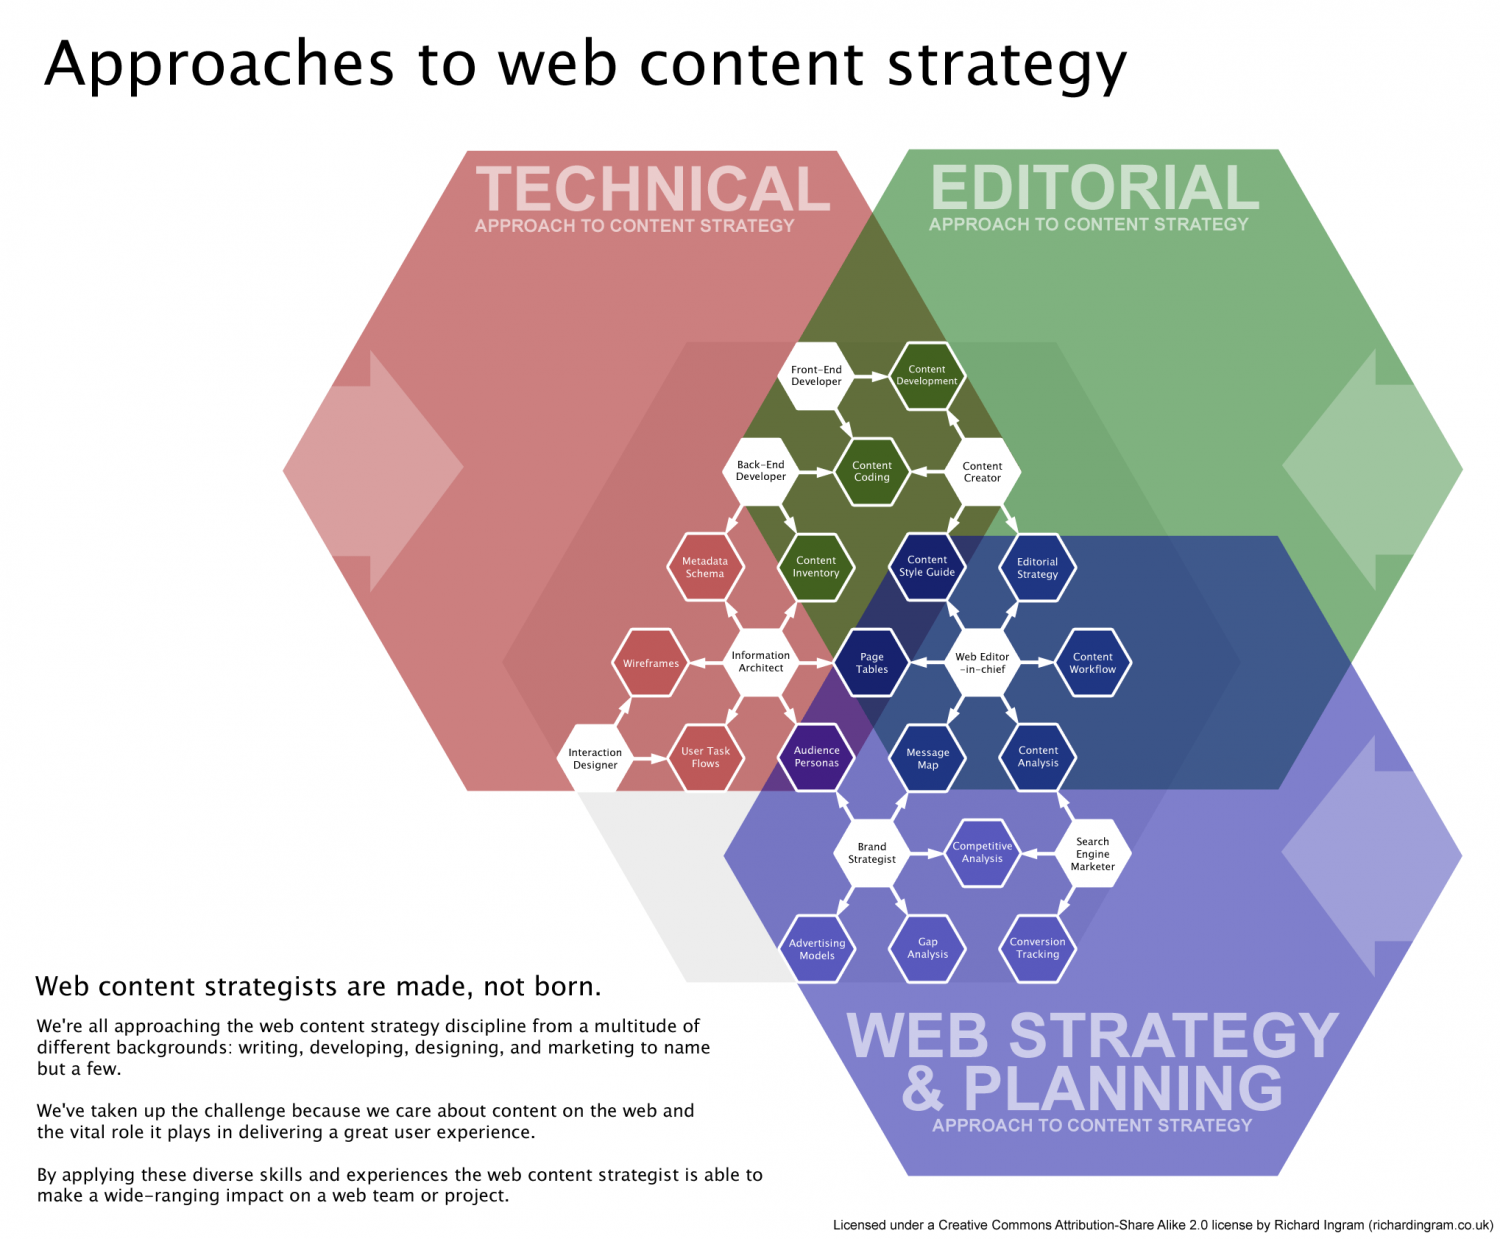 Approaches To Web Content Strategy Infographic